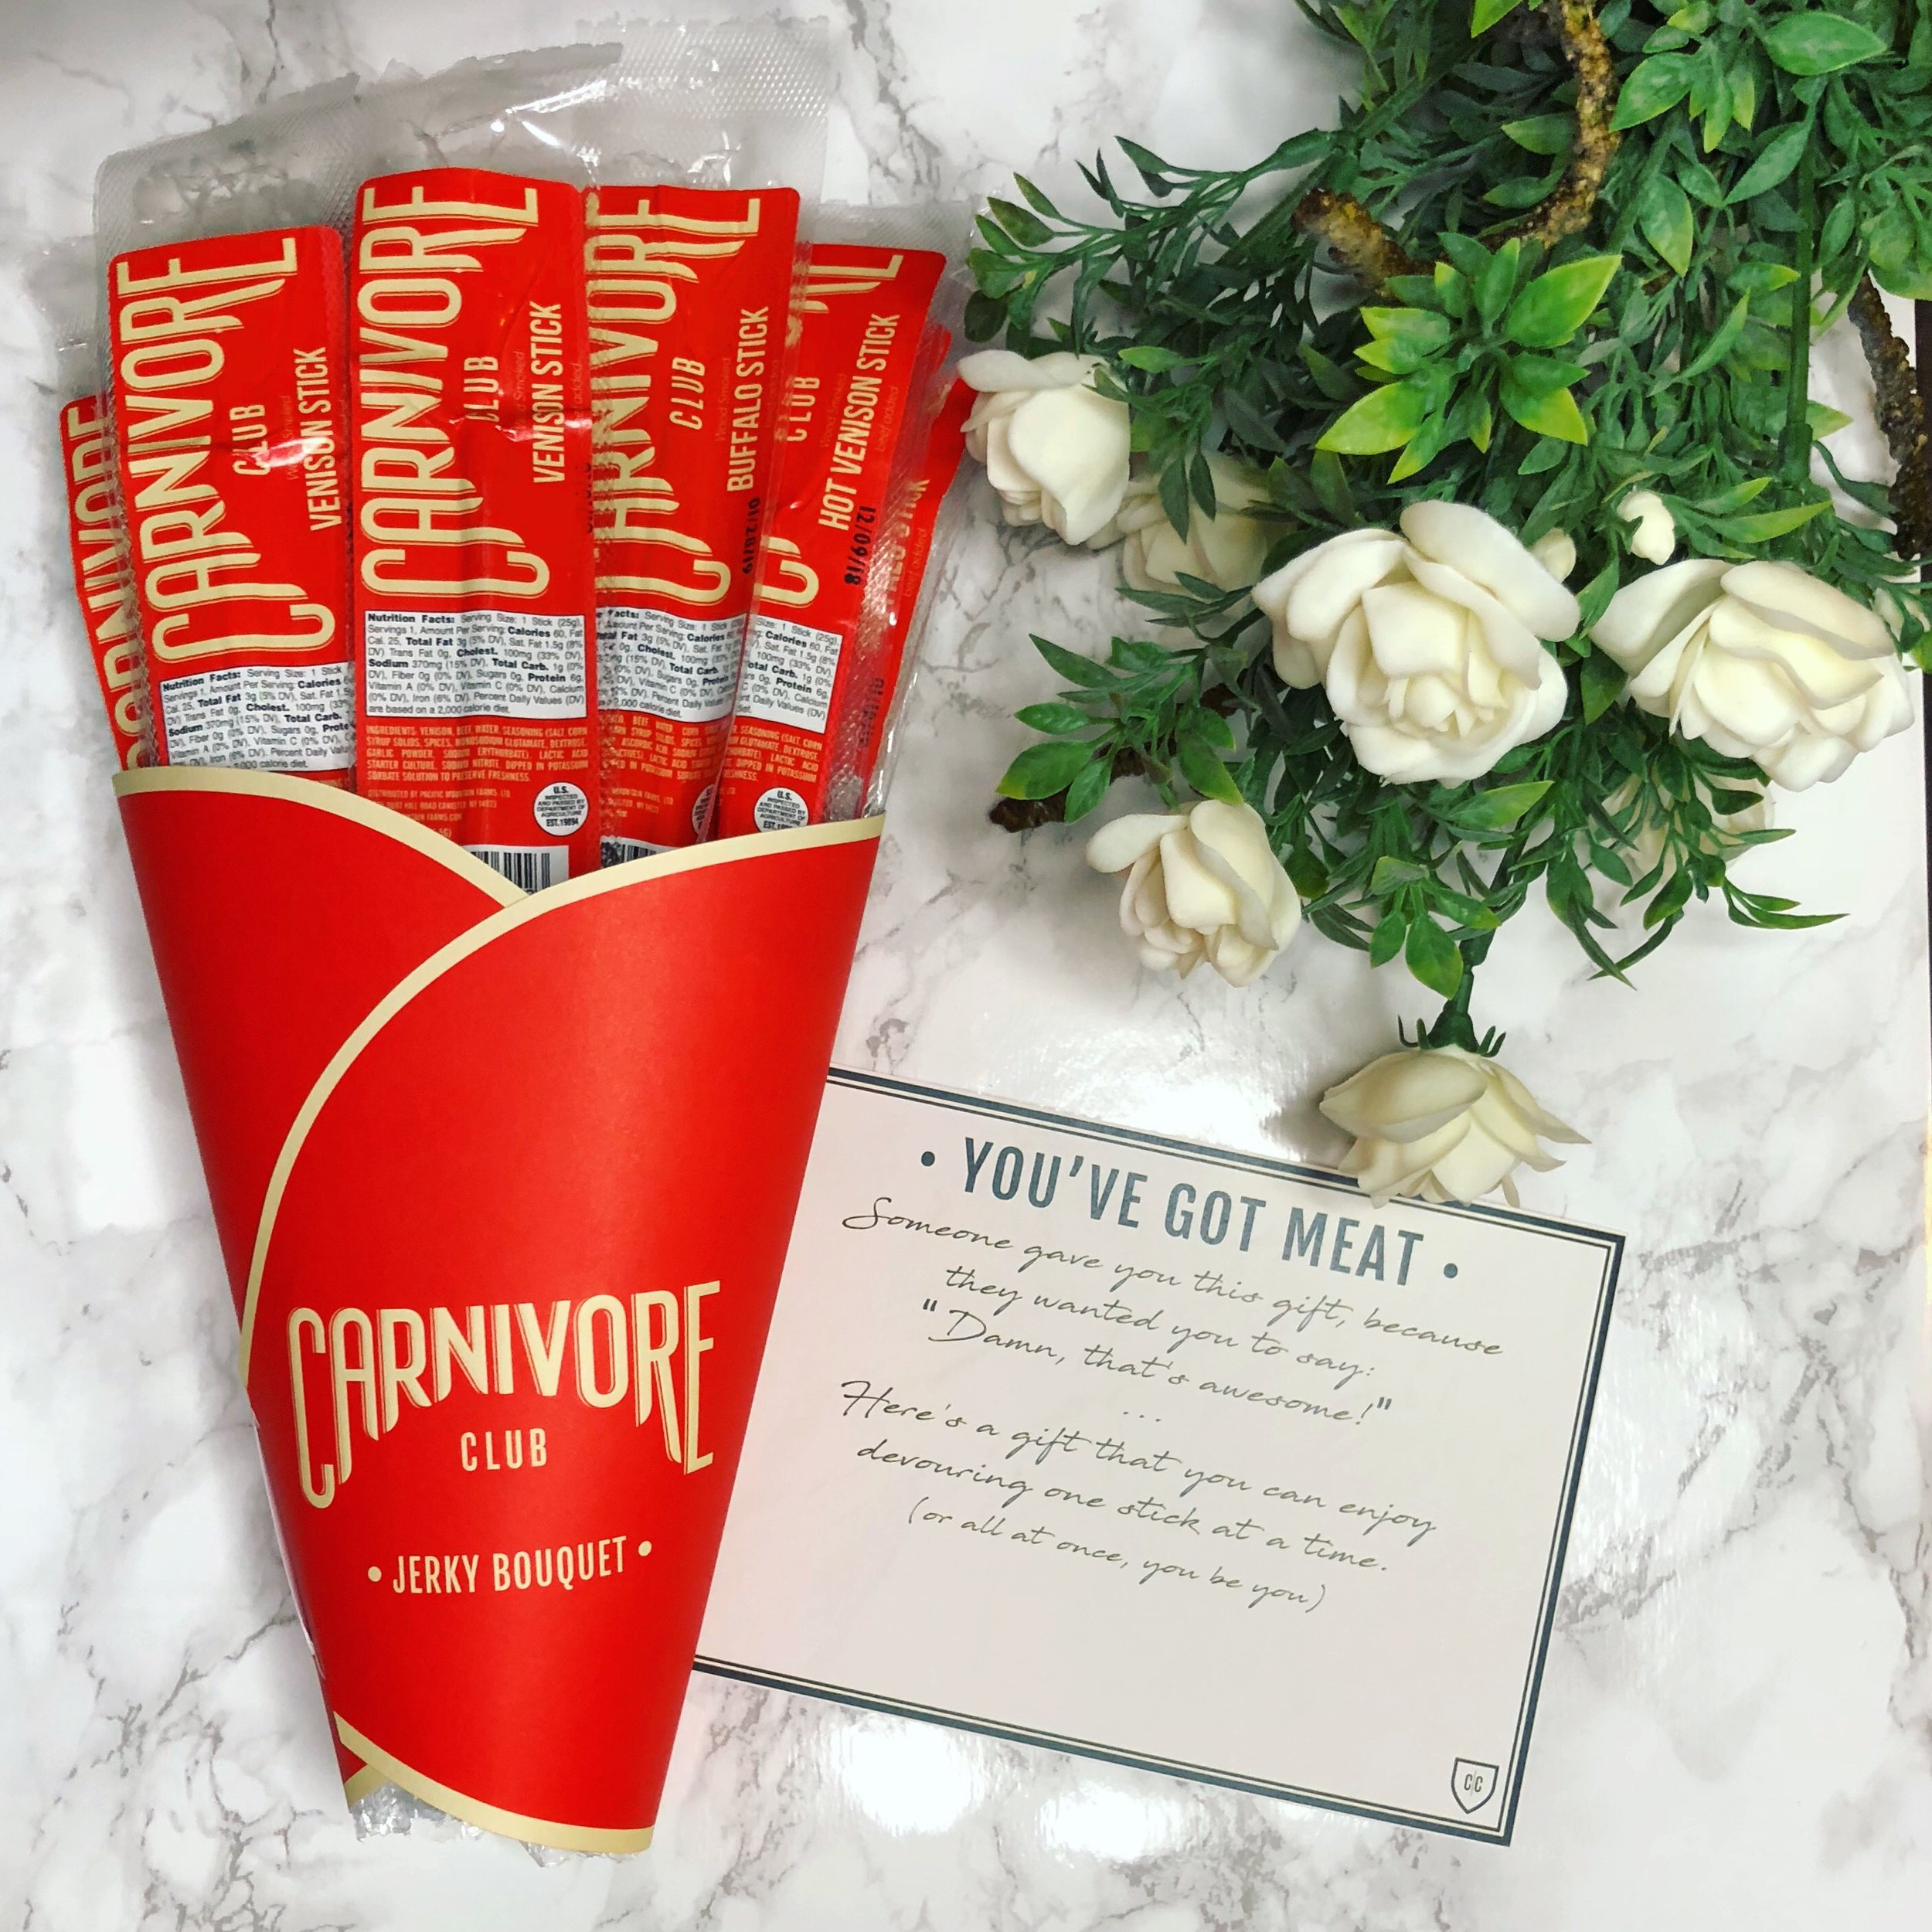 Thank you @thecarnivoreclub for the early Valentine's Day present 😍😋 Send a bouquet of meat to your love- use code HER15 for 15% off! #carnivoreclub#jerkybouquet #ambcollab #ccvdayamb -